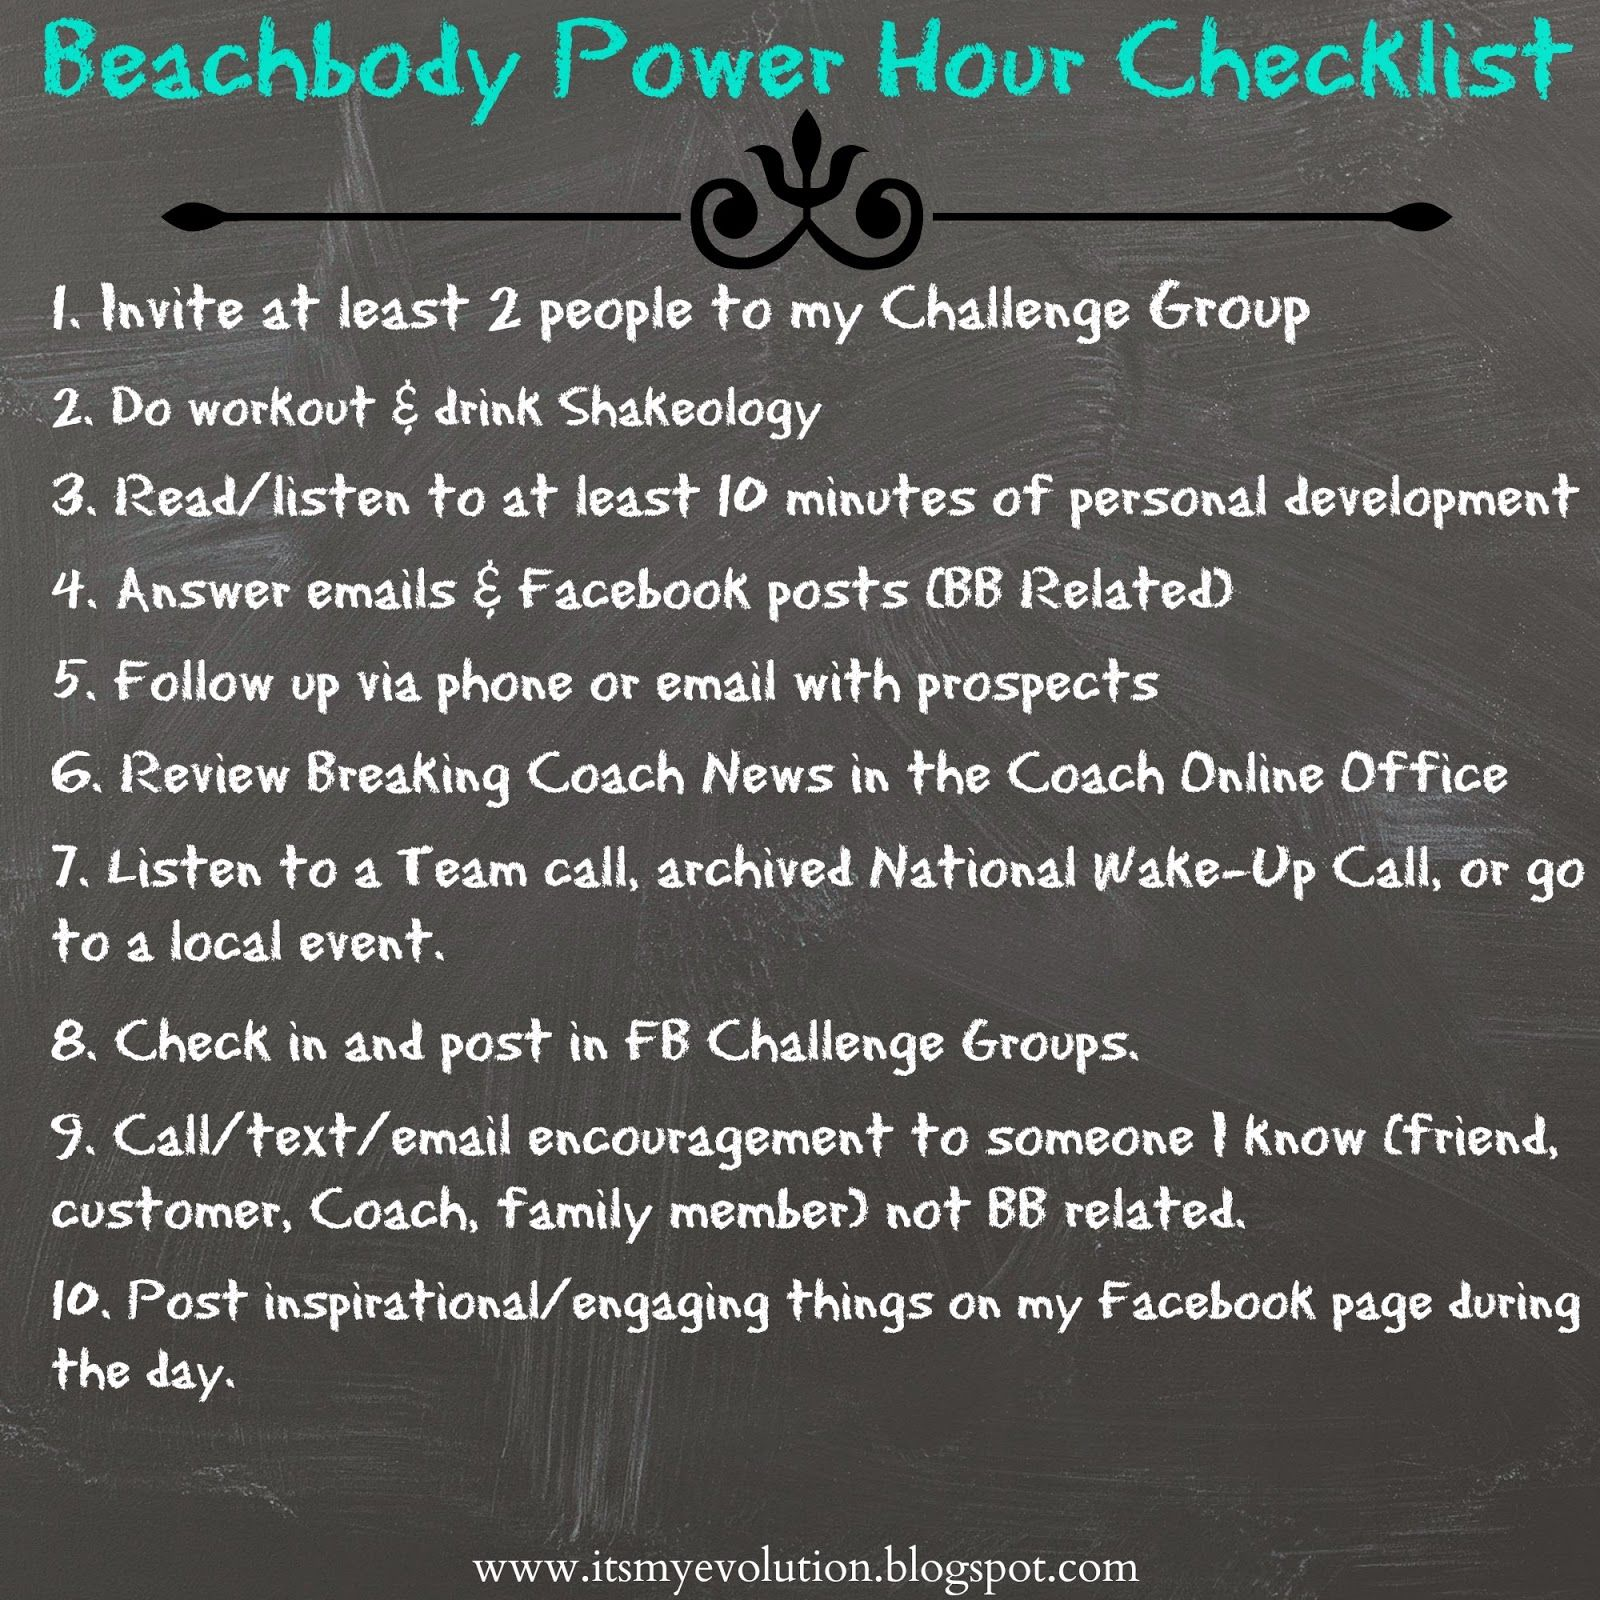 ItS My Evolution Beachbody Power Hour Checklist  Beachbody